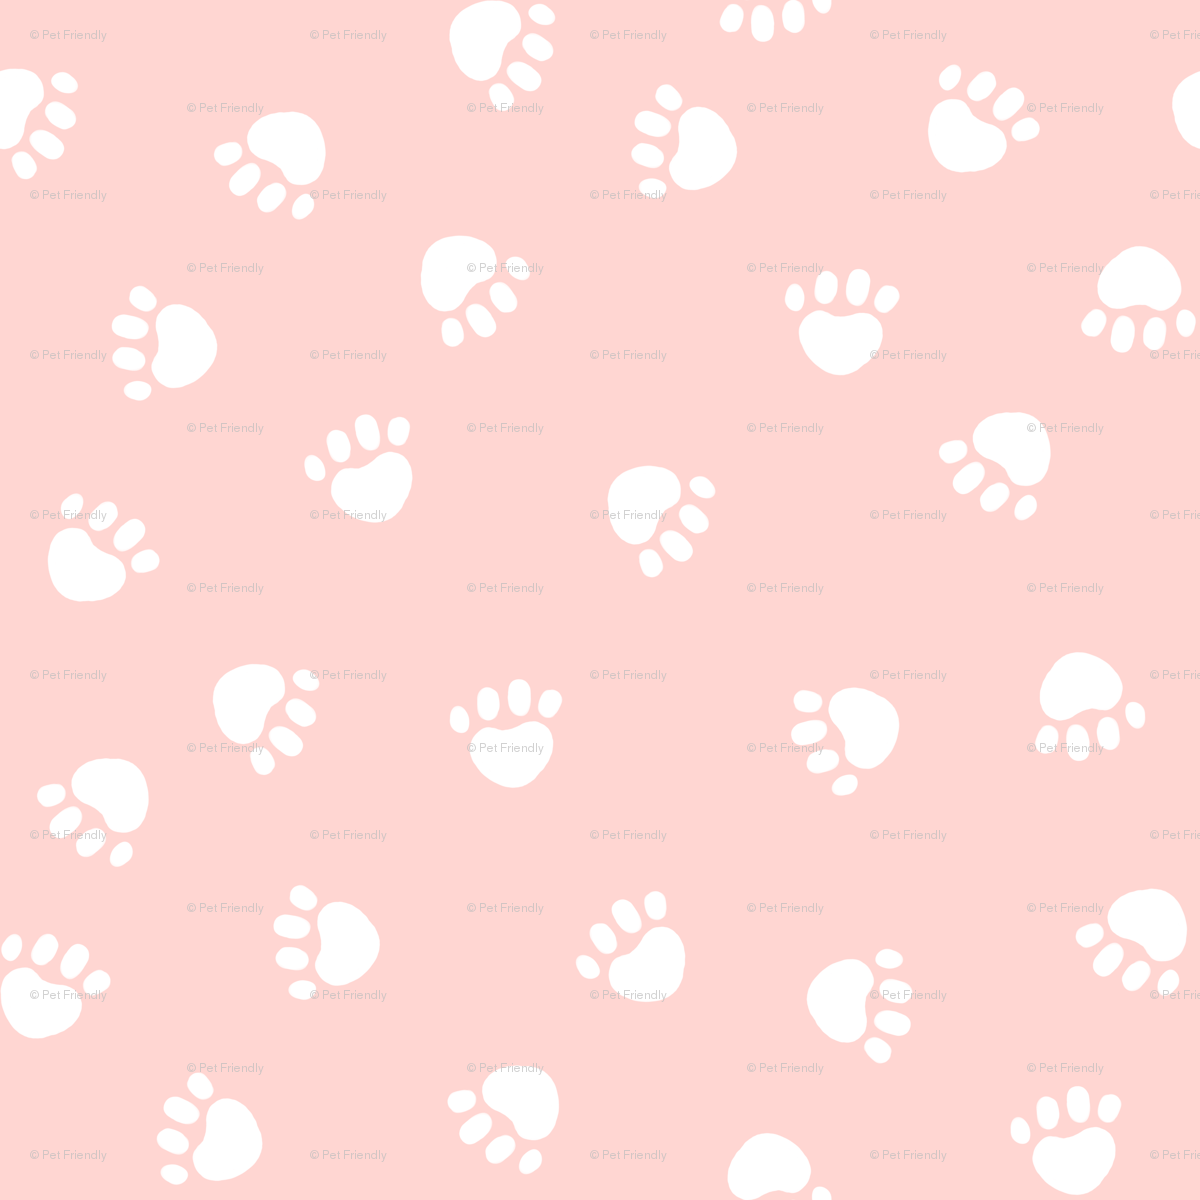 Dog Paws Print Pink Dogs Fabric Cute Paw Prints Fabrics Wallpaper